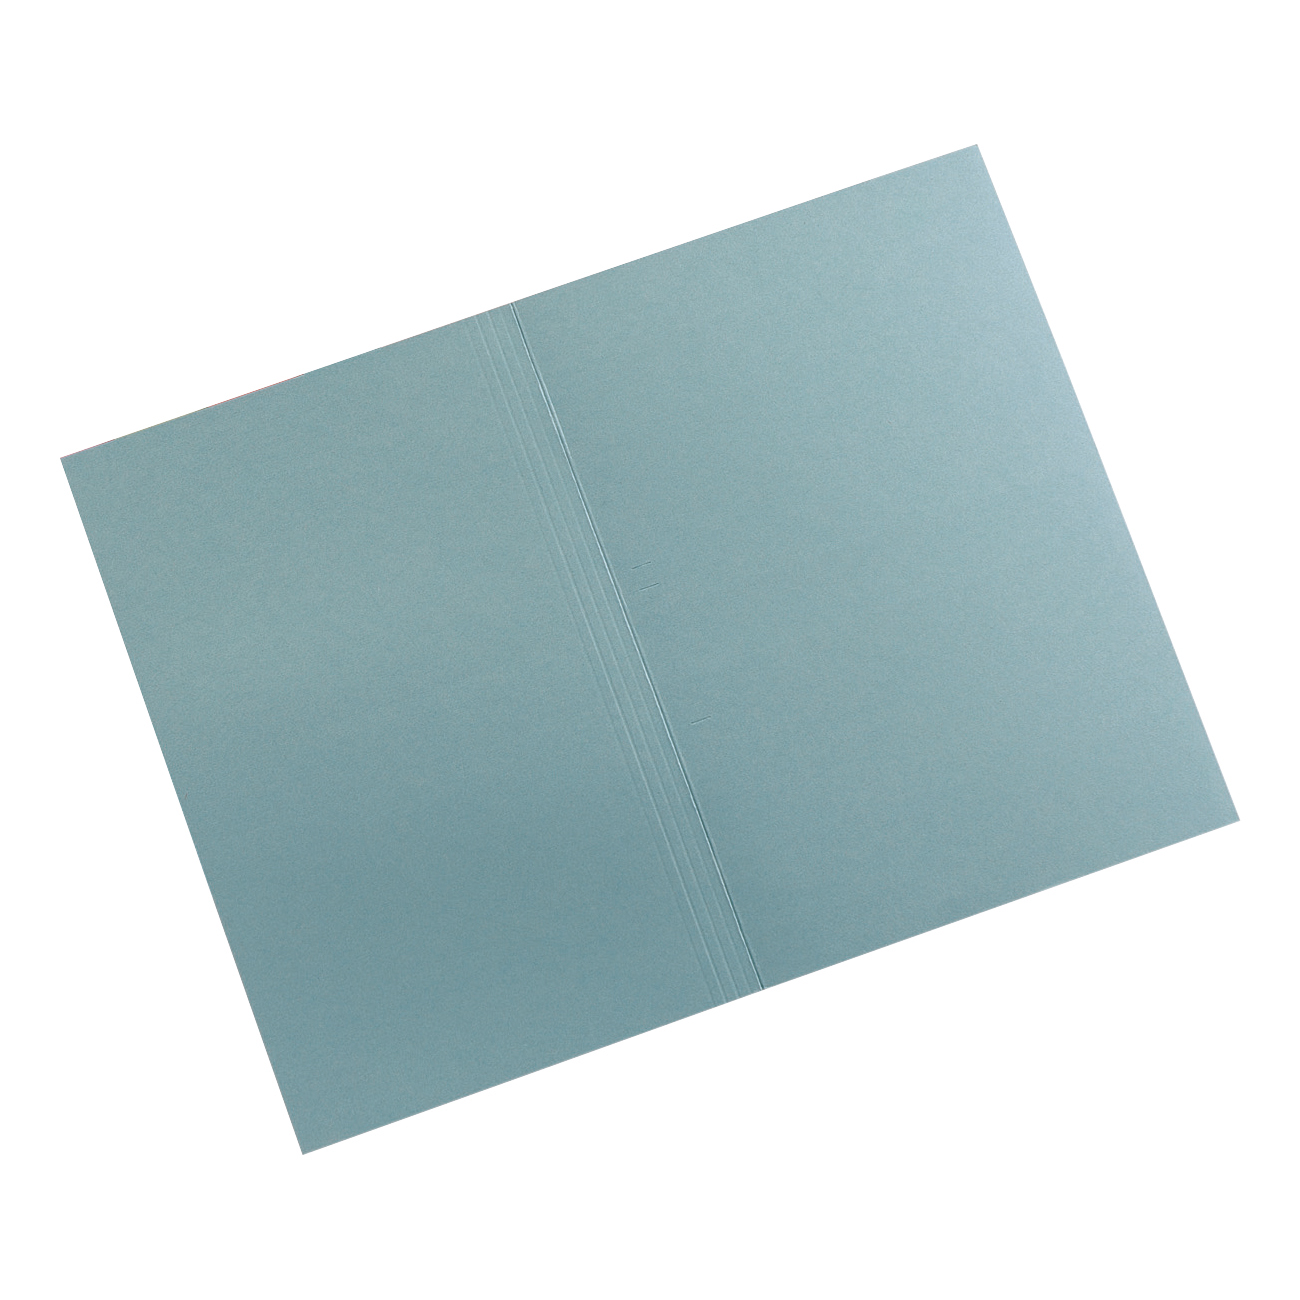 Square Cut Folders 5 Star Elite Square Cut Folders 315gsm Heavyweight Manilla Foolscap Blue Pack 100